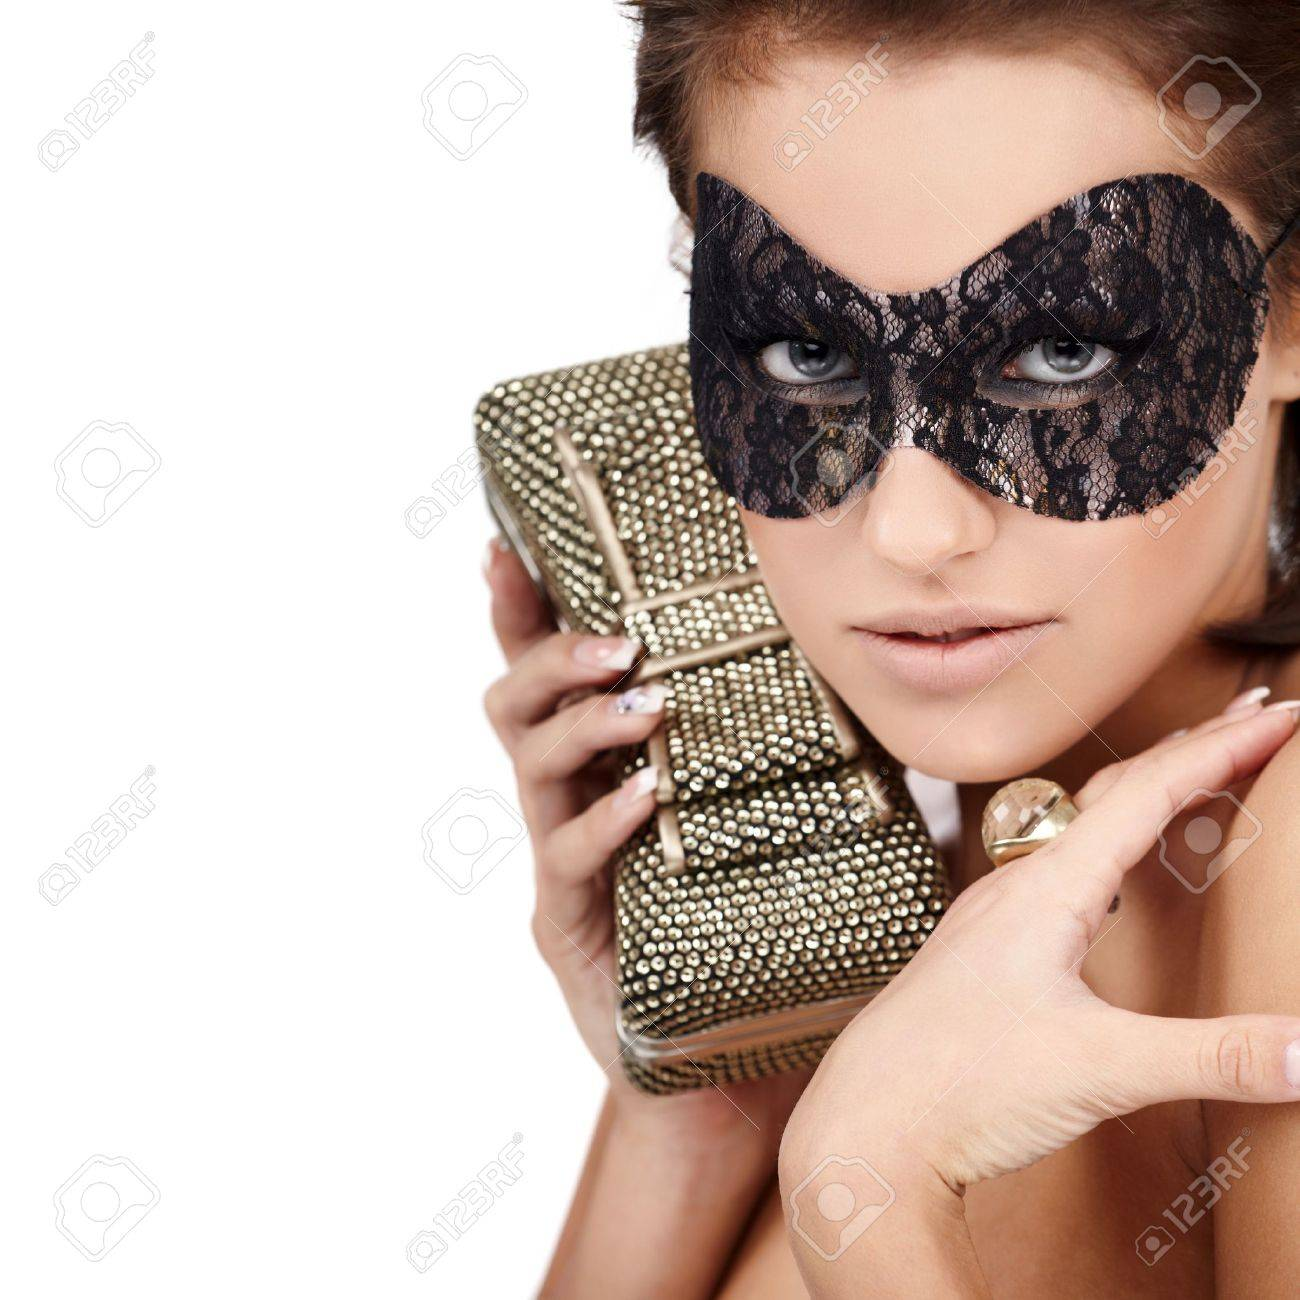 Young brunette lady with luxury accessories isolated on white background Stock Photo - 8342829